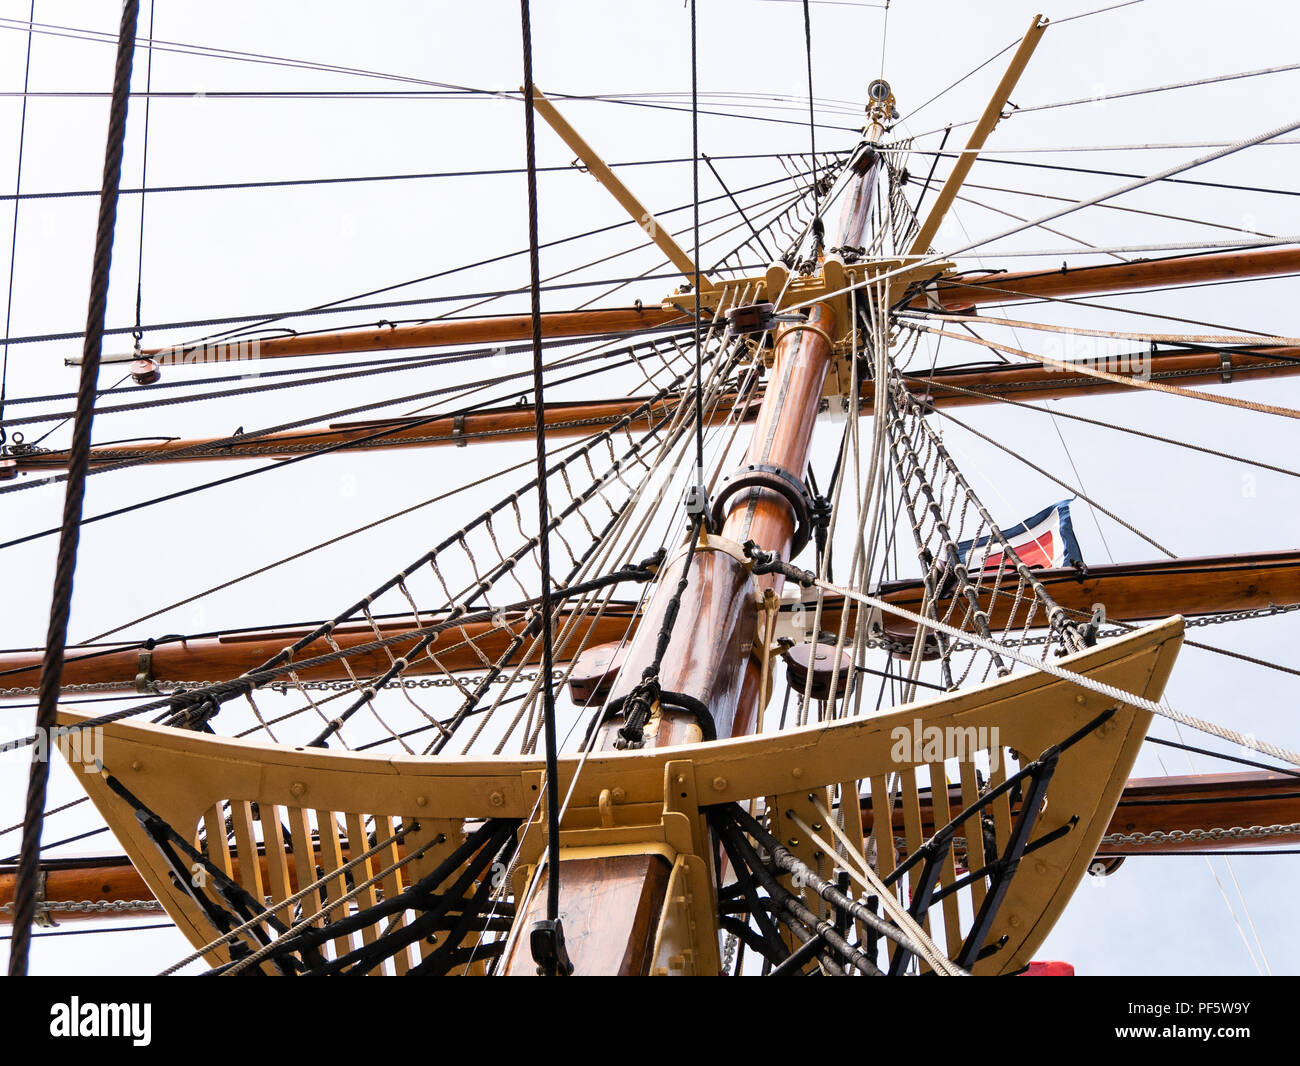 Mast, rigging and platform on RRS Discovery, Captain Scott's Antarctic ship, Discovery Point, Dundee, Scotland, UK Stock Photo